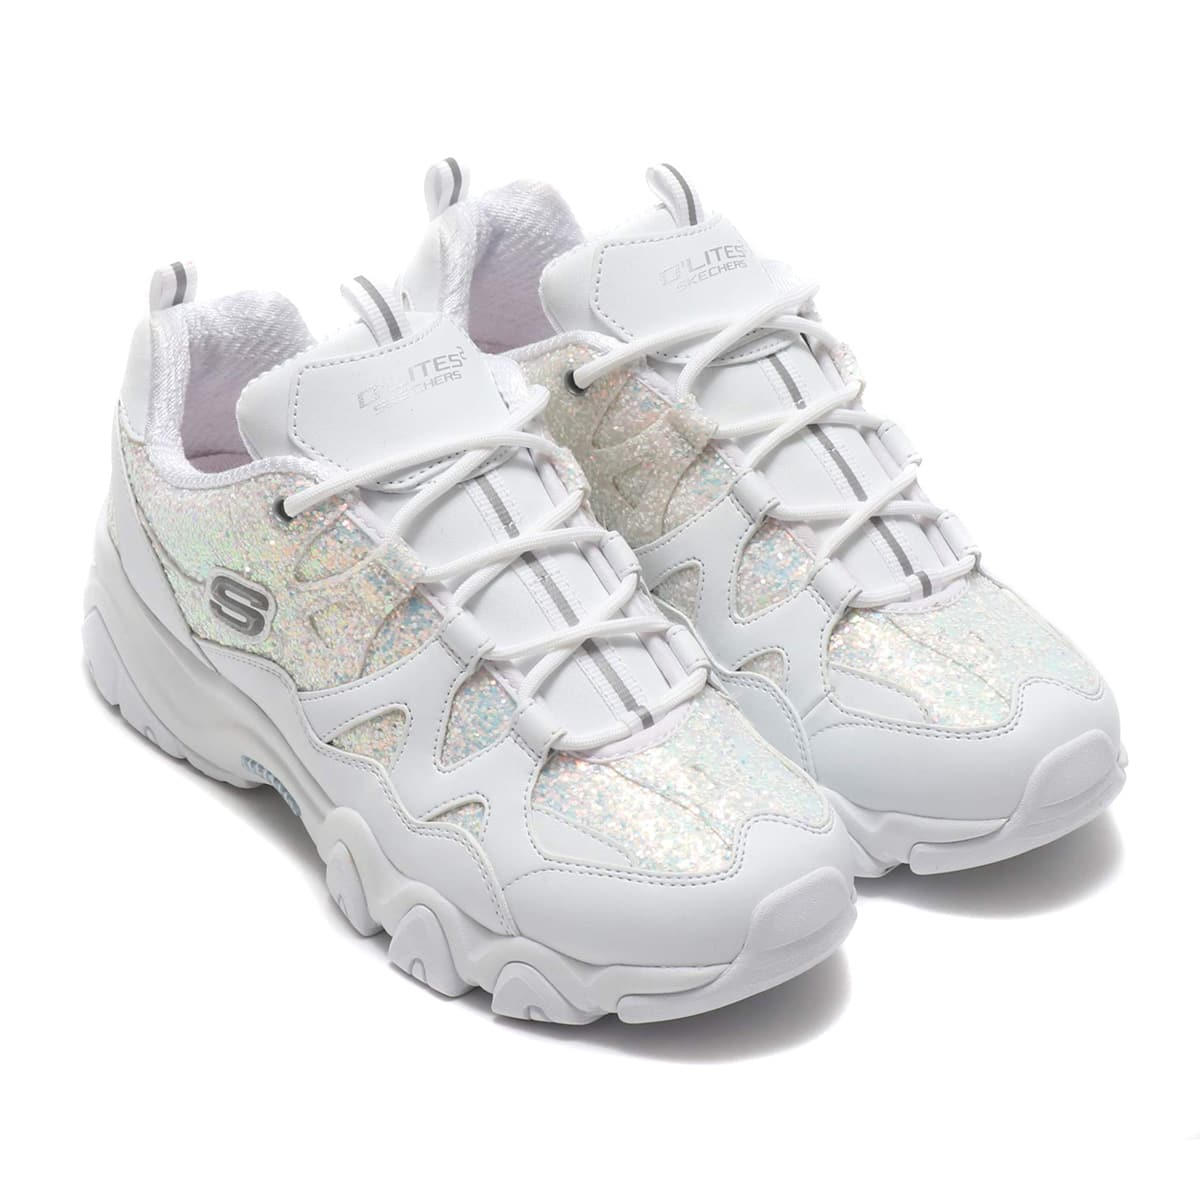 SKECHERS × atmos pink D'LITES 2 - CRYSTAL DAZZLE WHT 19FA-S_photo_large